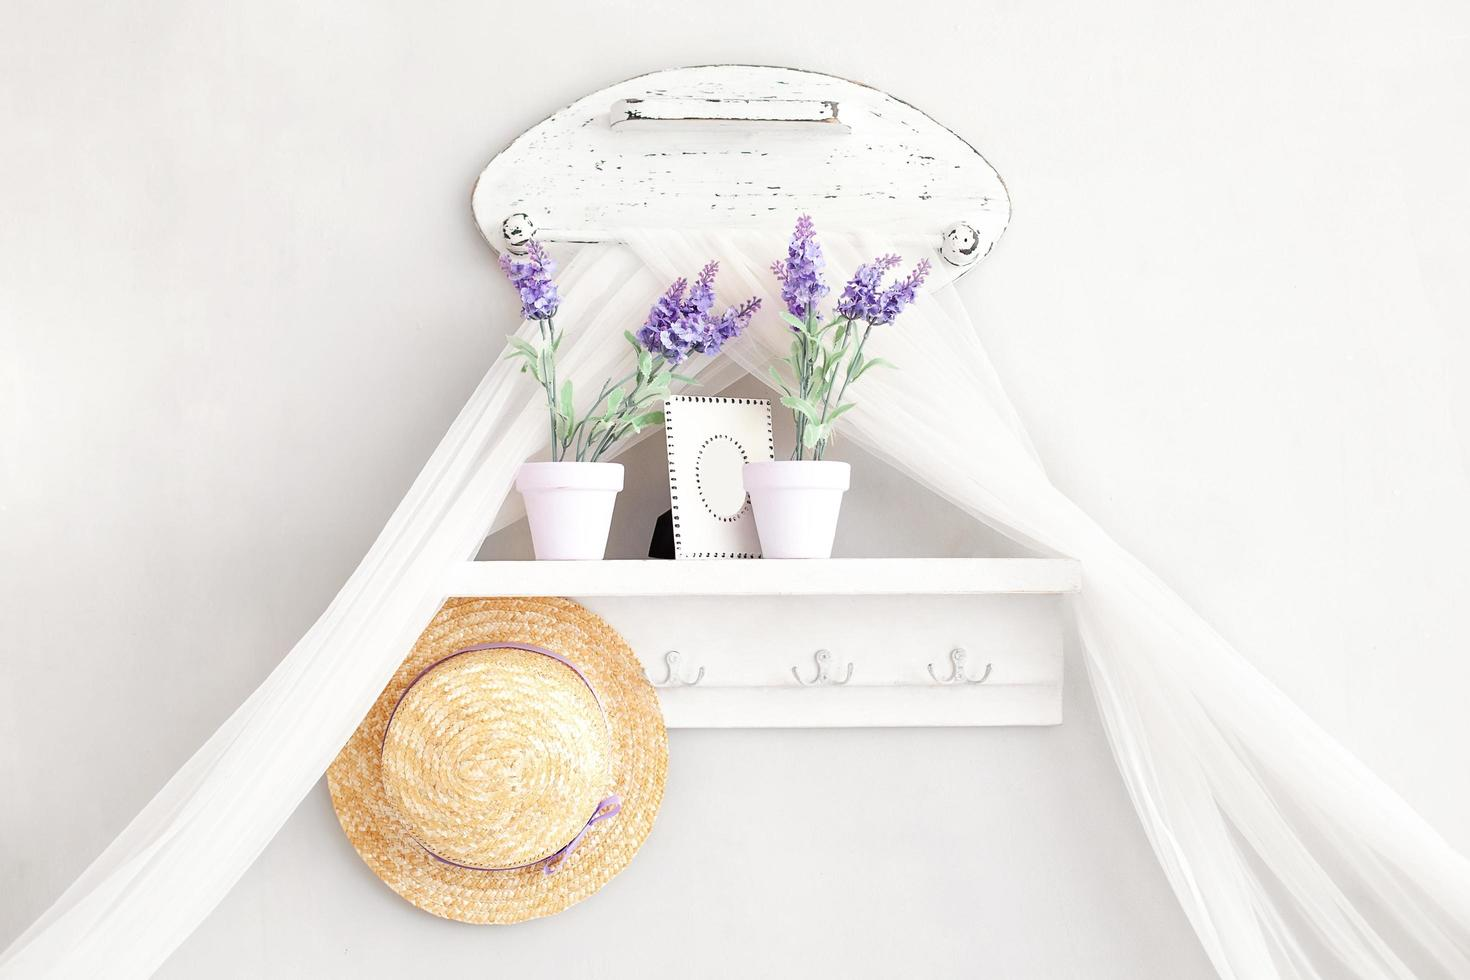 Shabby chic decor in Provencal style.  photo